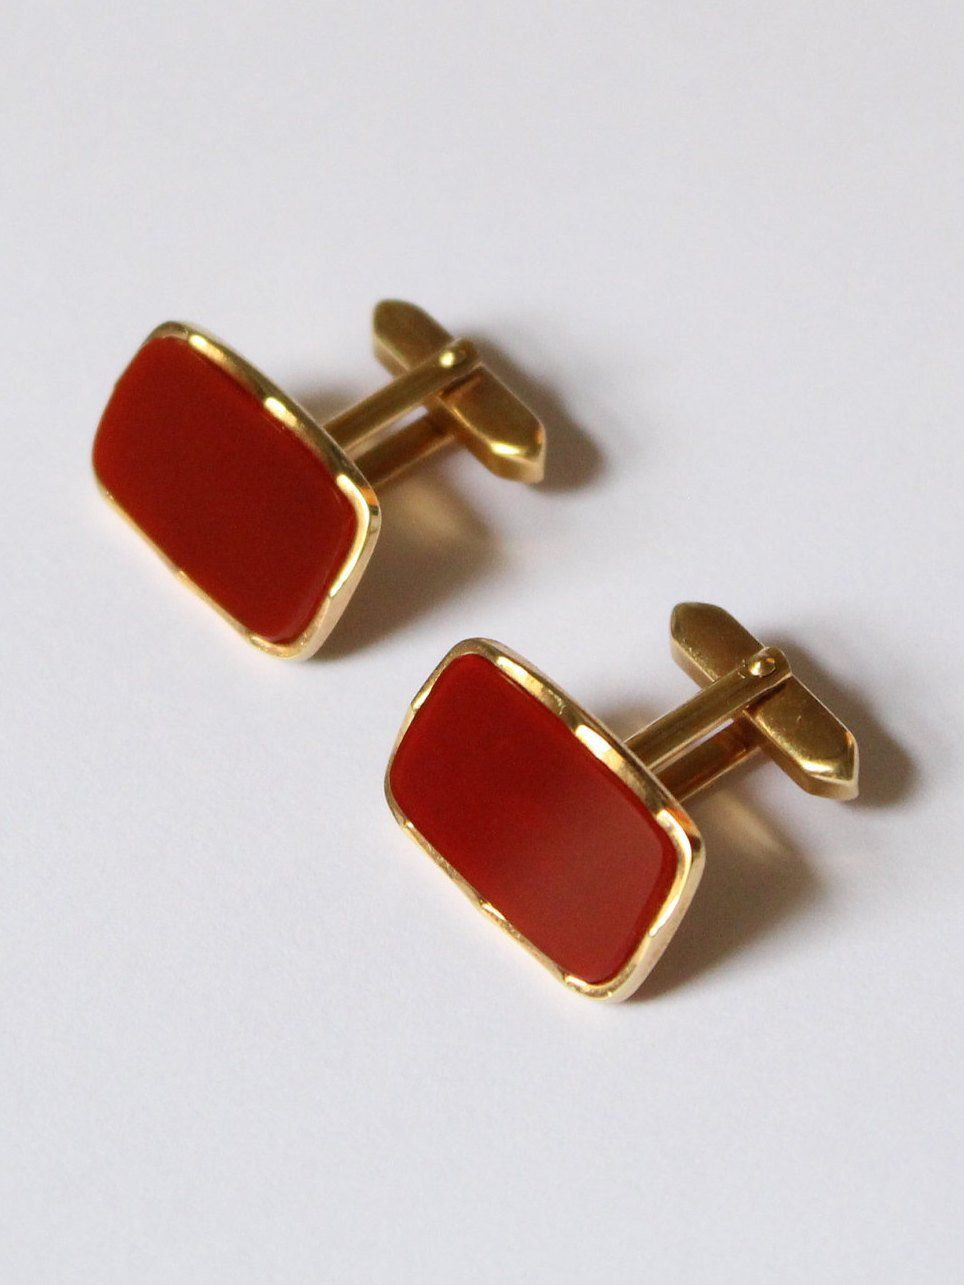 Red Austin Reed Cufflinks Https Etsy Me 2coo0tf Listmyetsy Red Gold Accessories Cufflinks Mens Accessories Jewelry Mens Accessories Bracelet Cufflinks